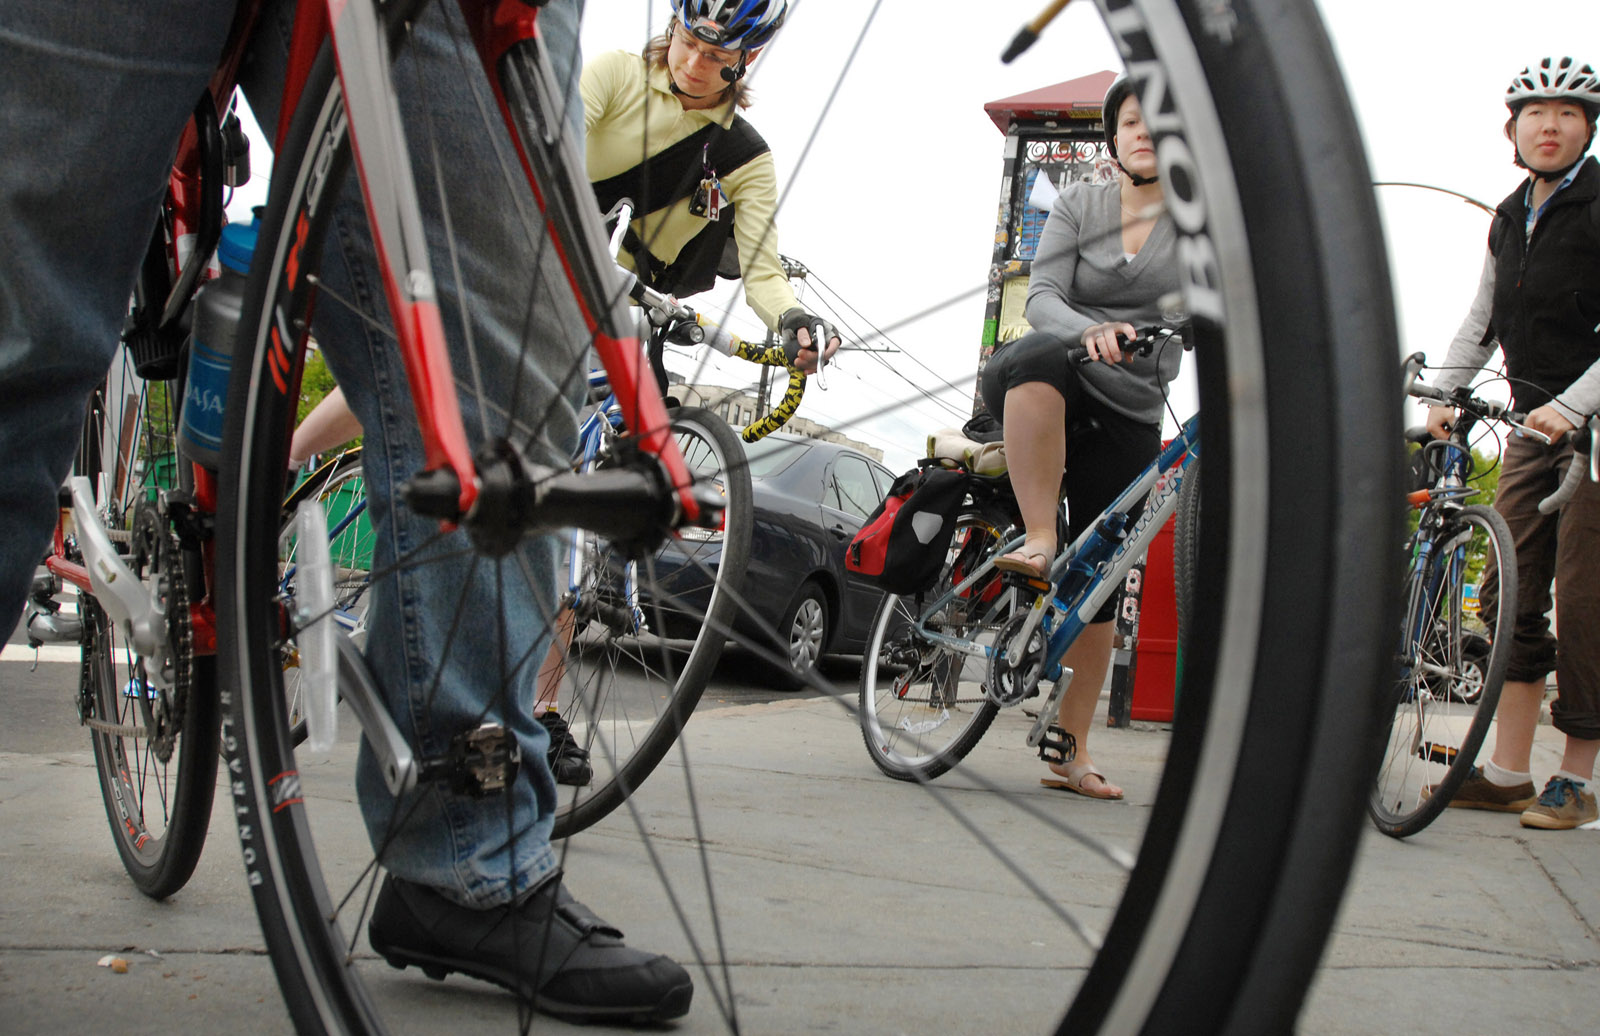 Roads also closed to bikes, pedestrians during papal visit